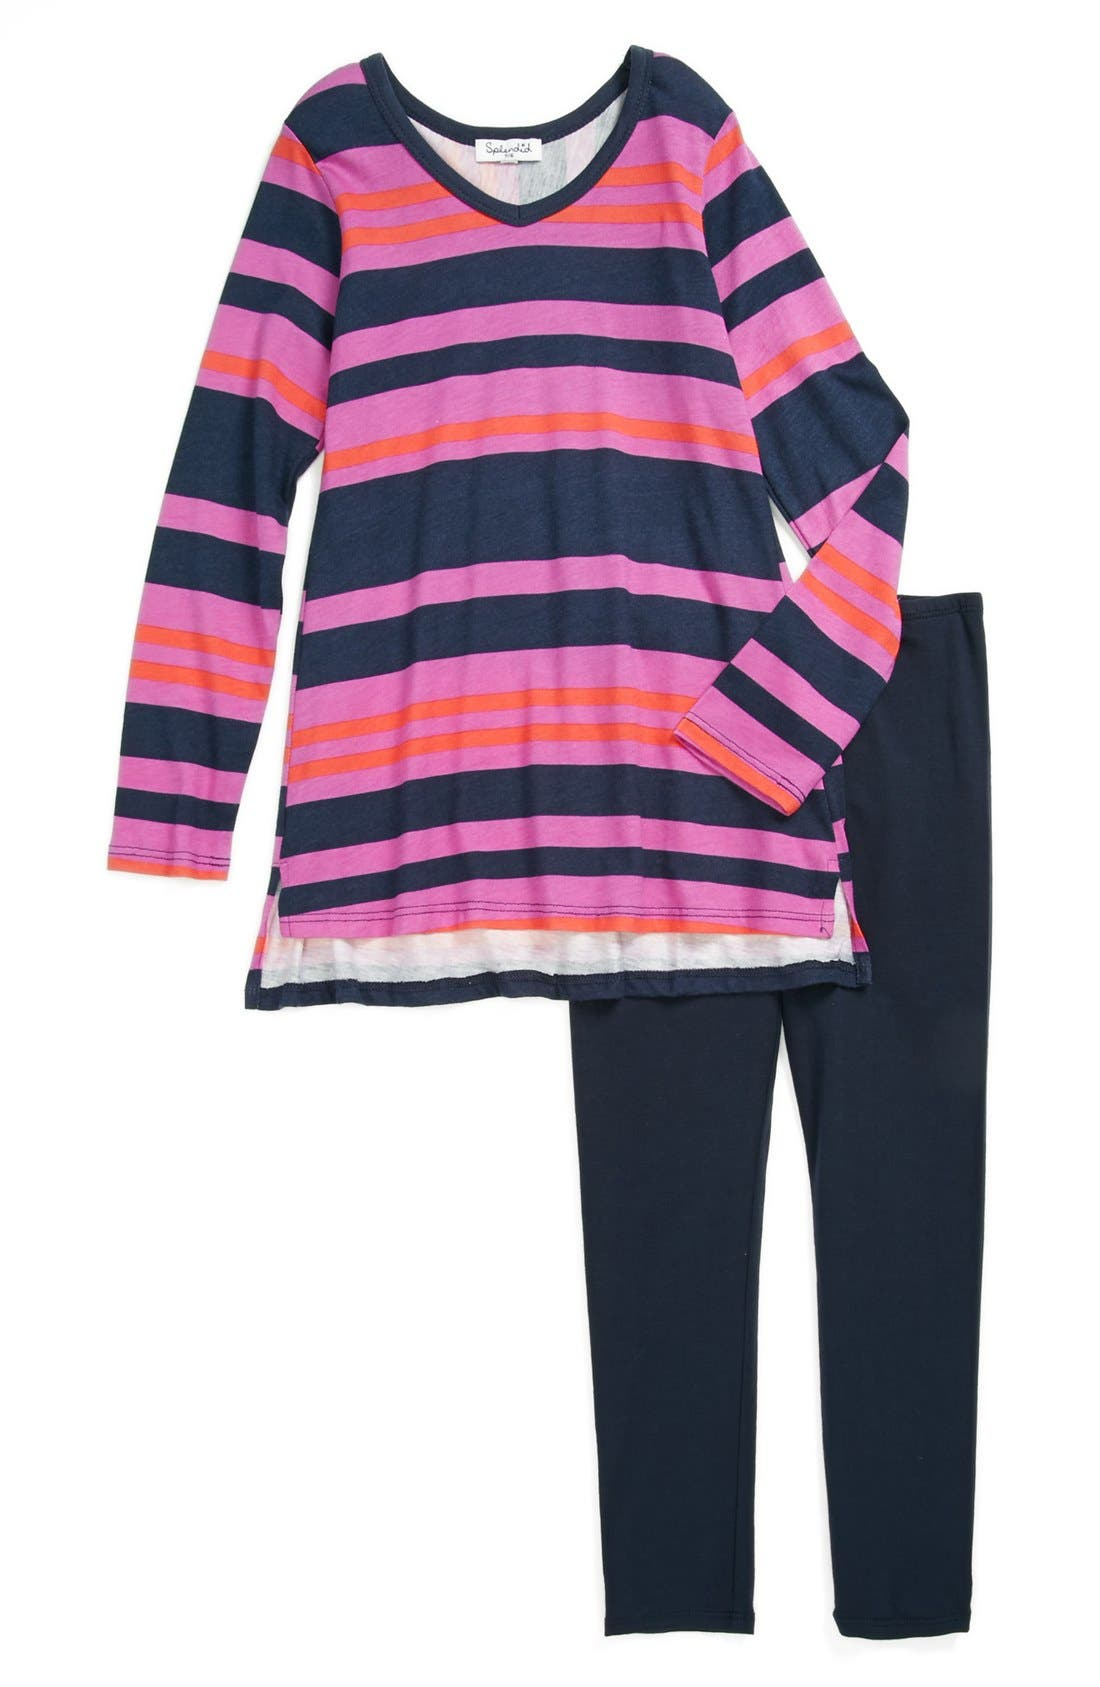 Main Image - Splendid Tunic & Leggings Set (Little Girls)